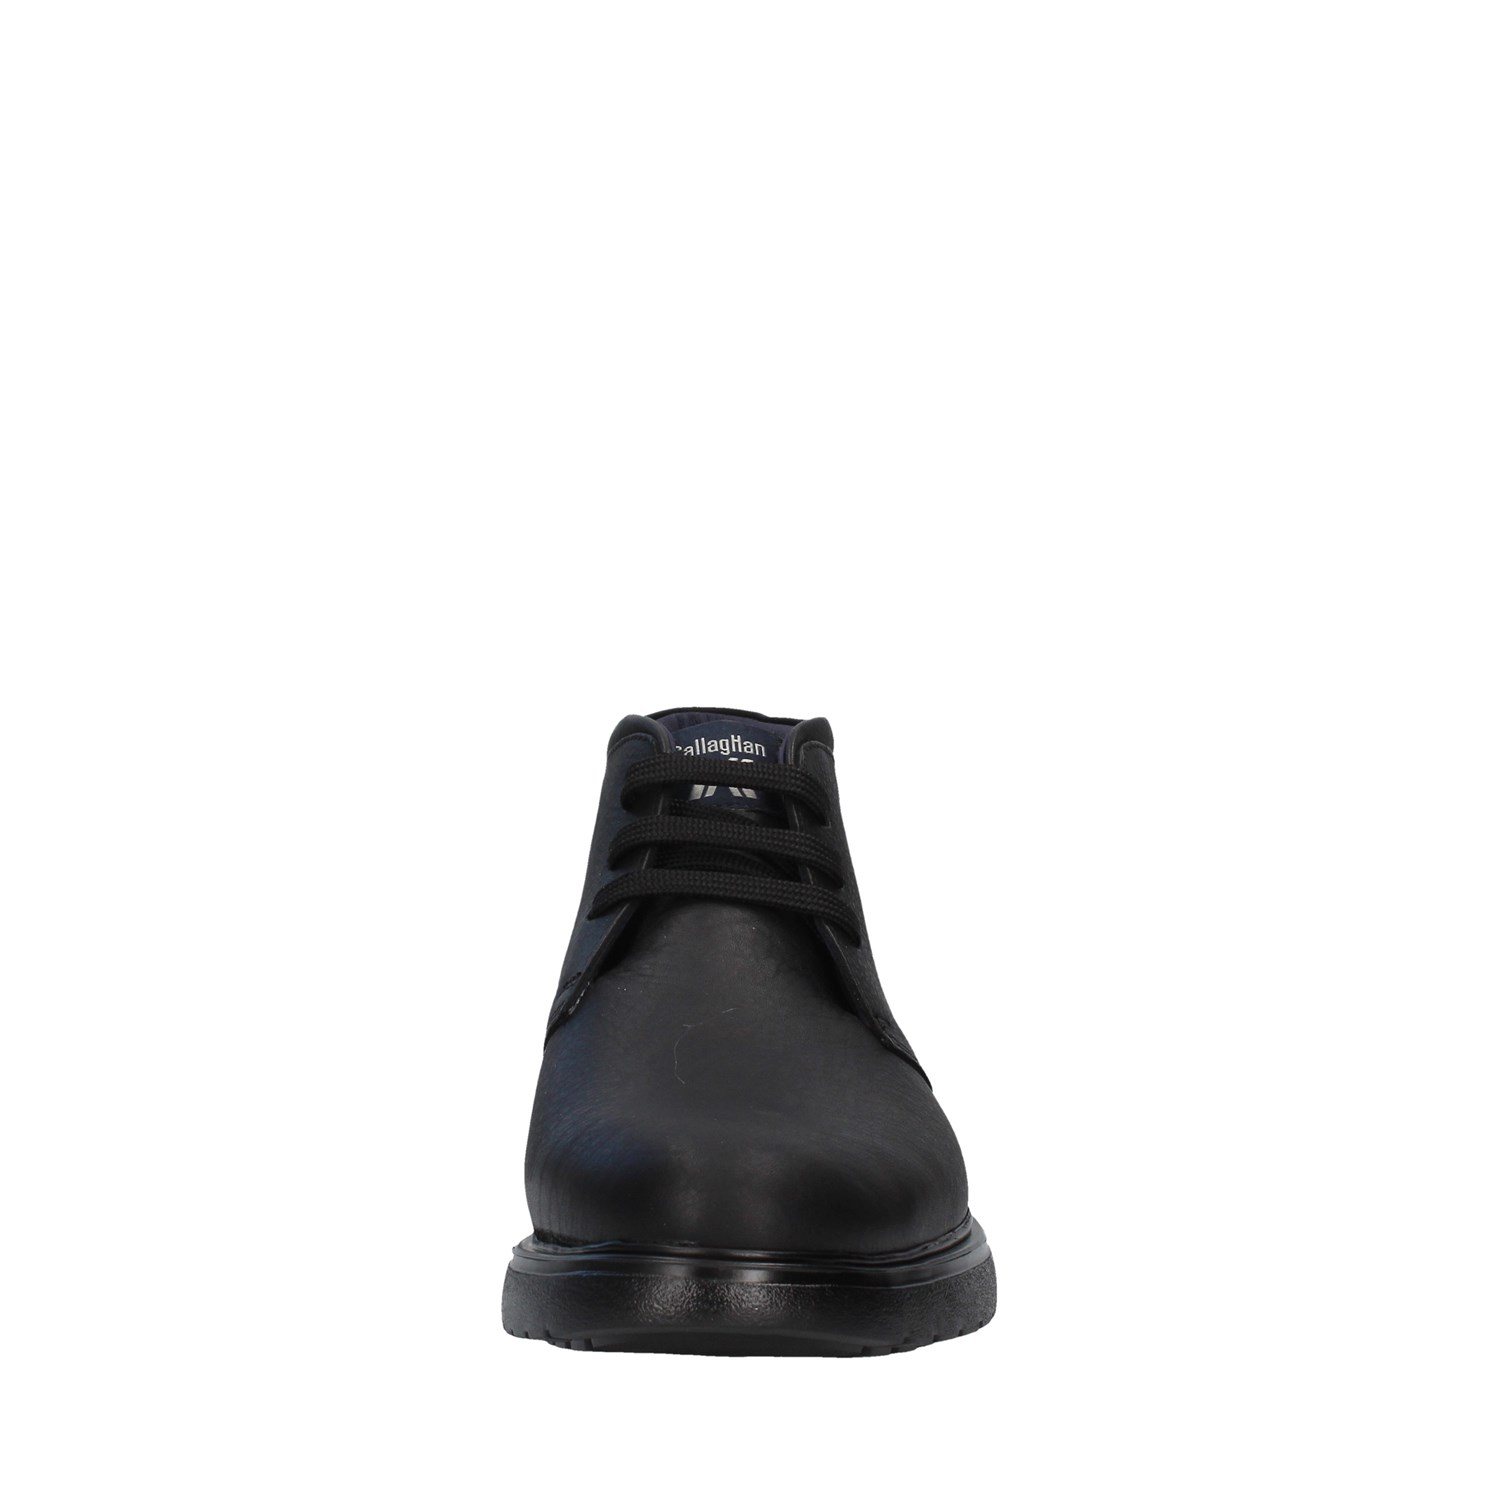 Callaghan Shoes Man Ankle BLACK 12604